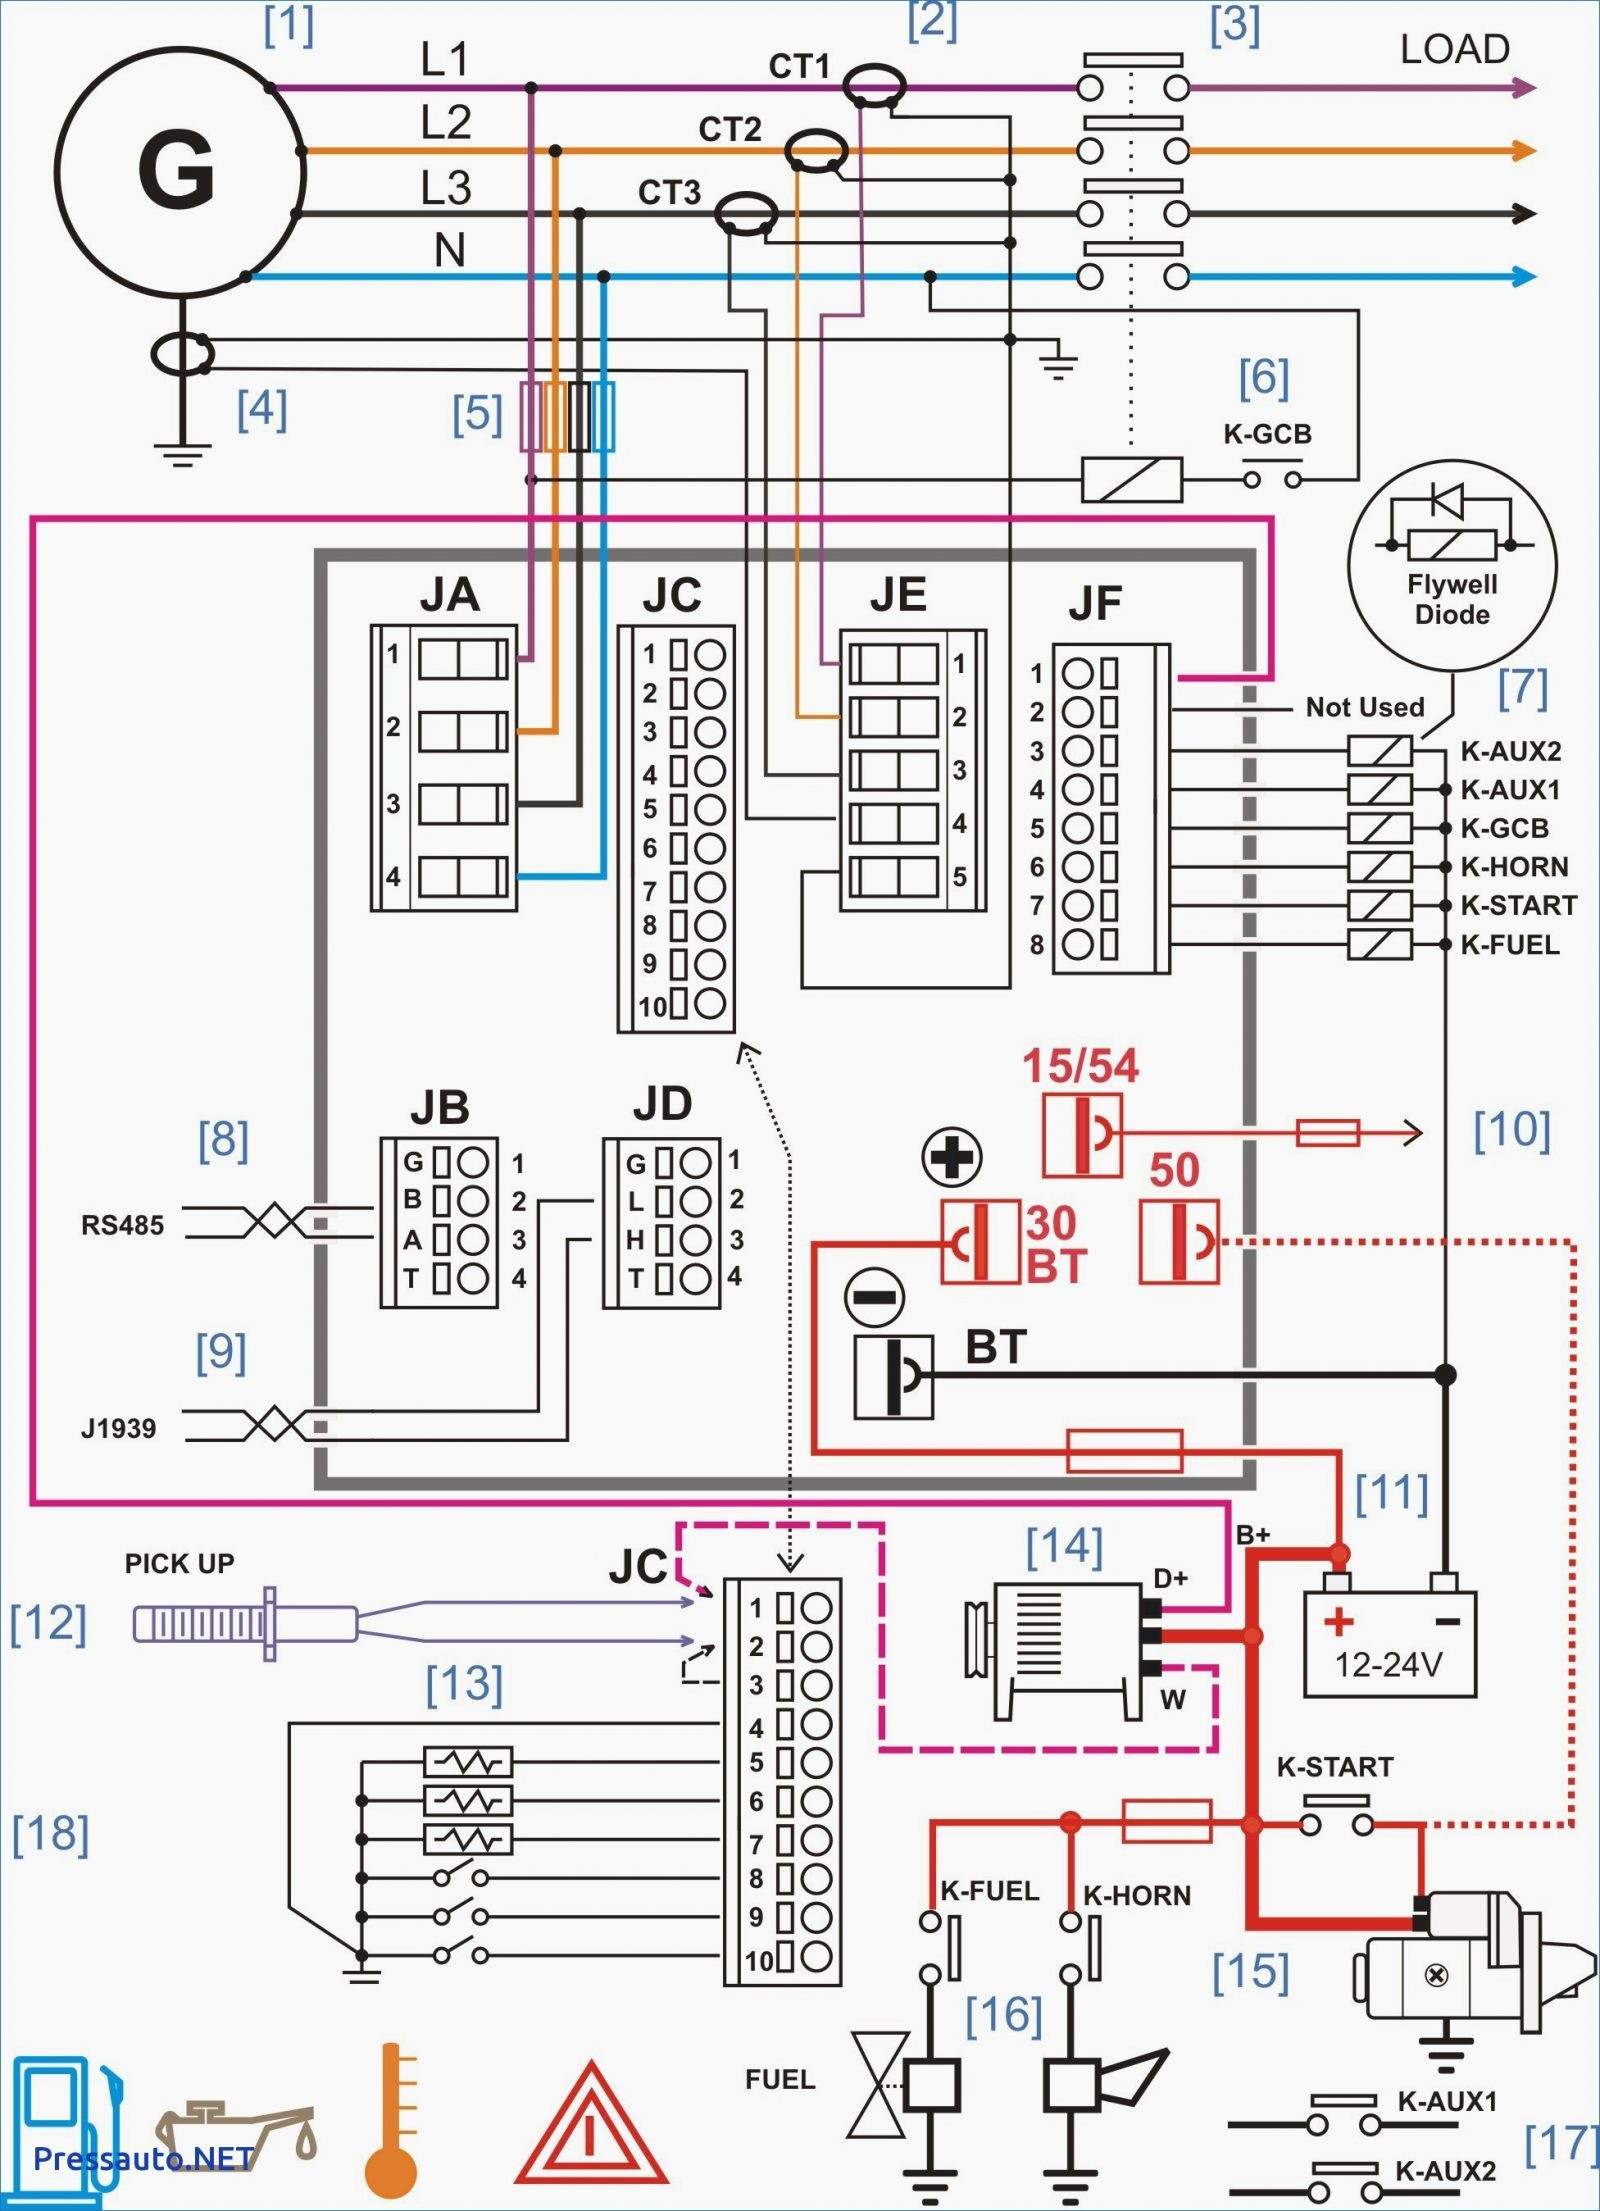 Mini Circuit Wiring Diagram Reinvent Your Parallel X Online Schematics Rh Delvato Co Cars Simple Home Lighting